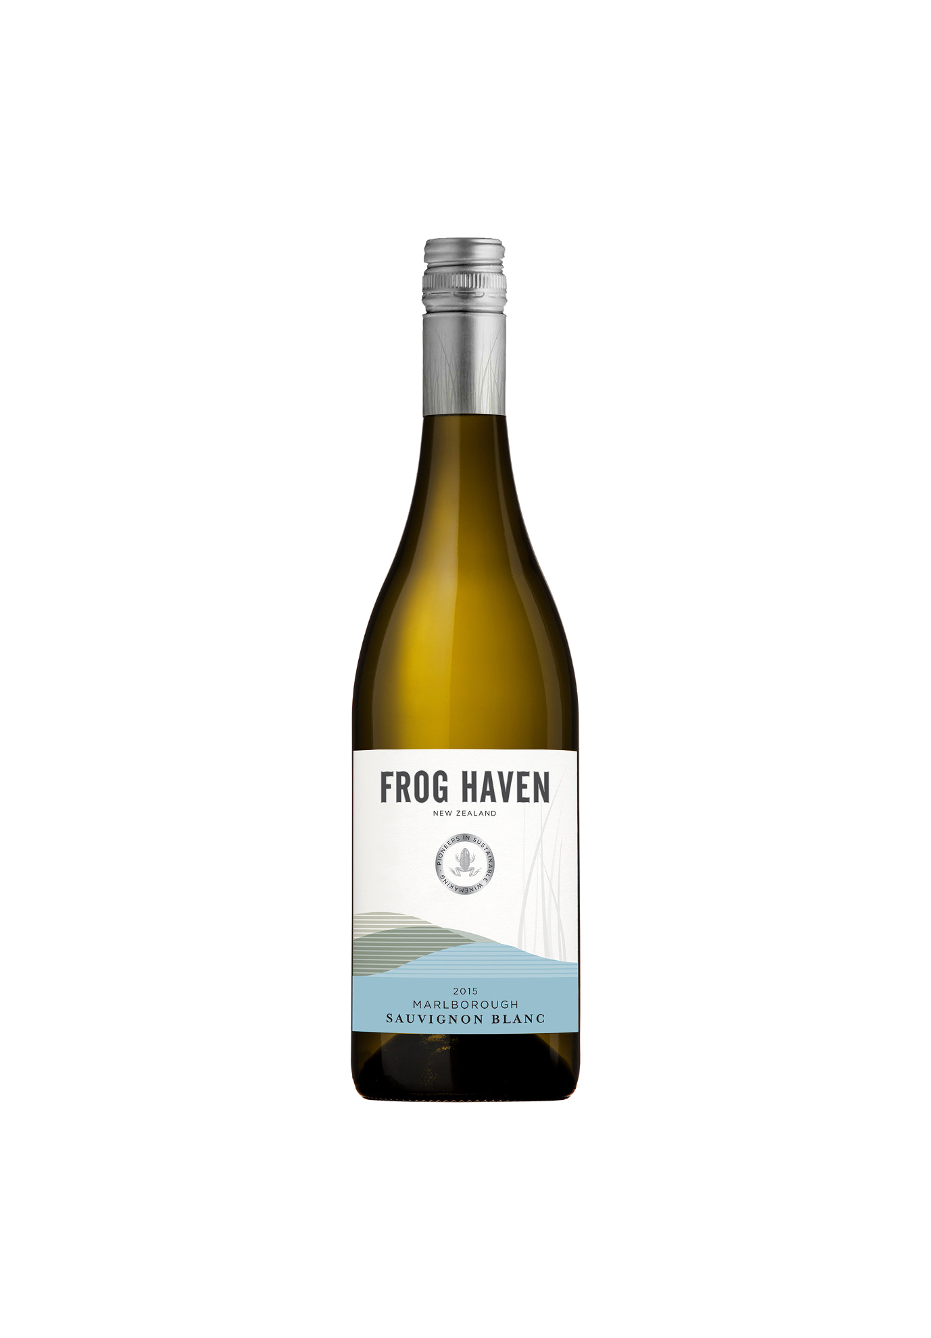 Frog Haven Marlborough Sauvignon Blanc 2016